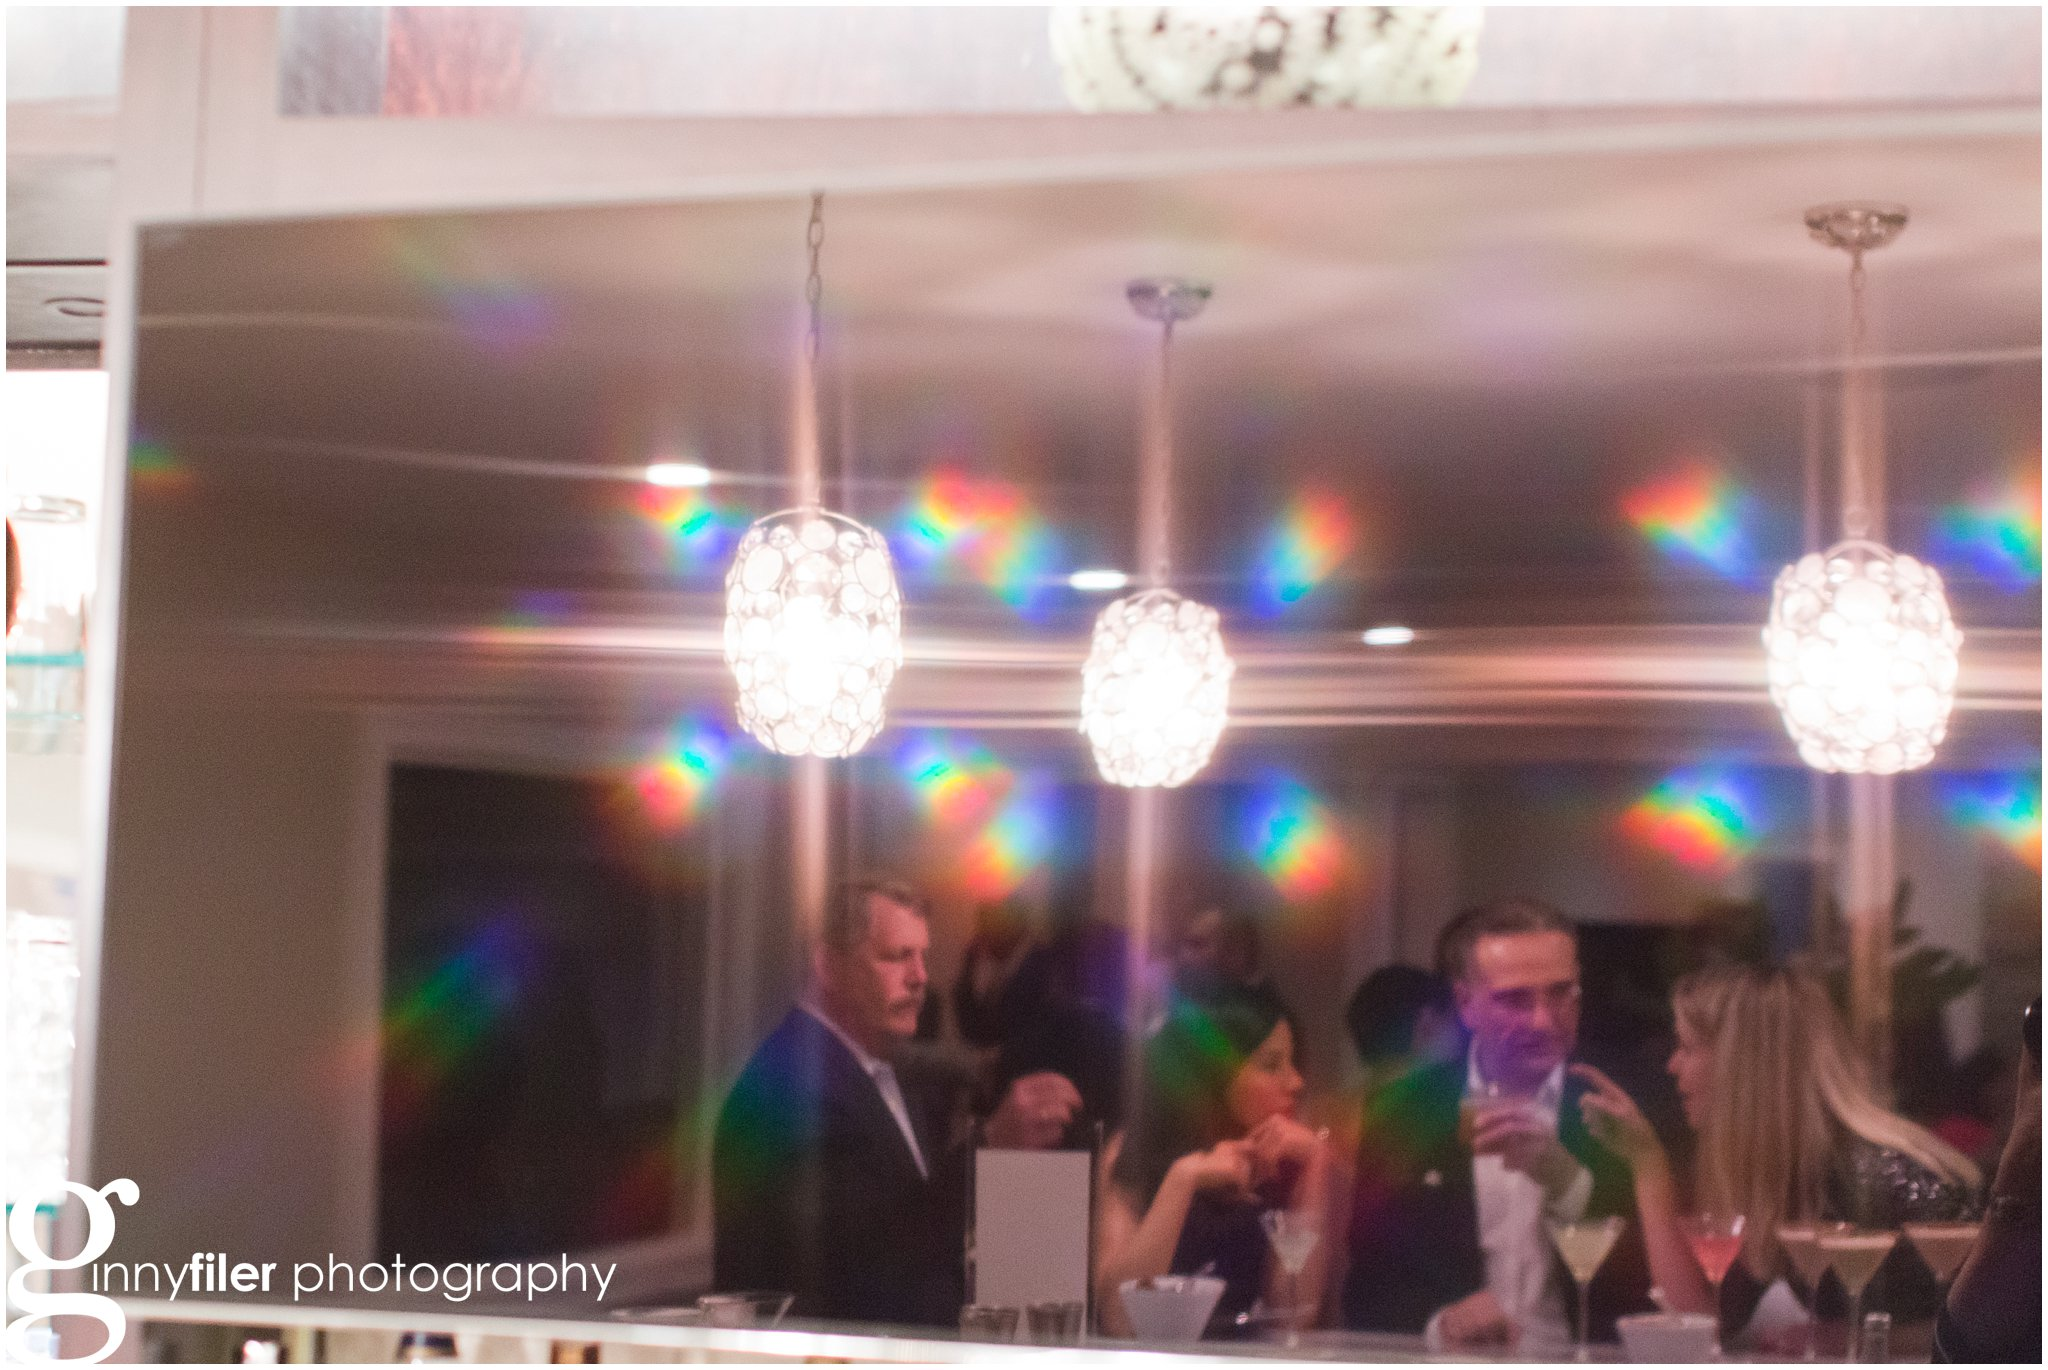 event_photography_party_0031.jpg